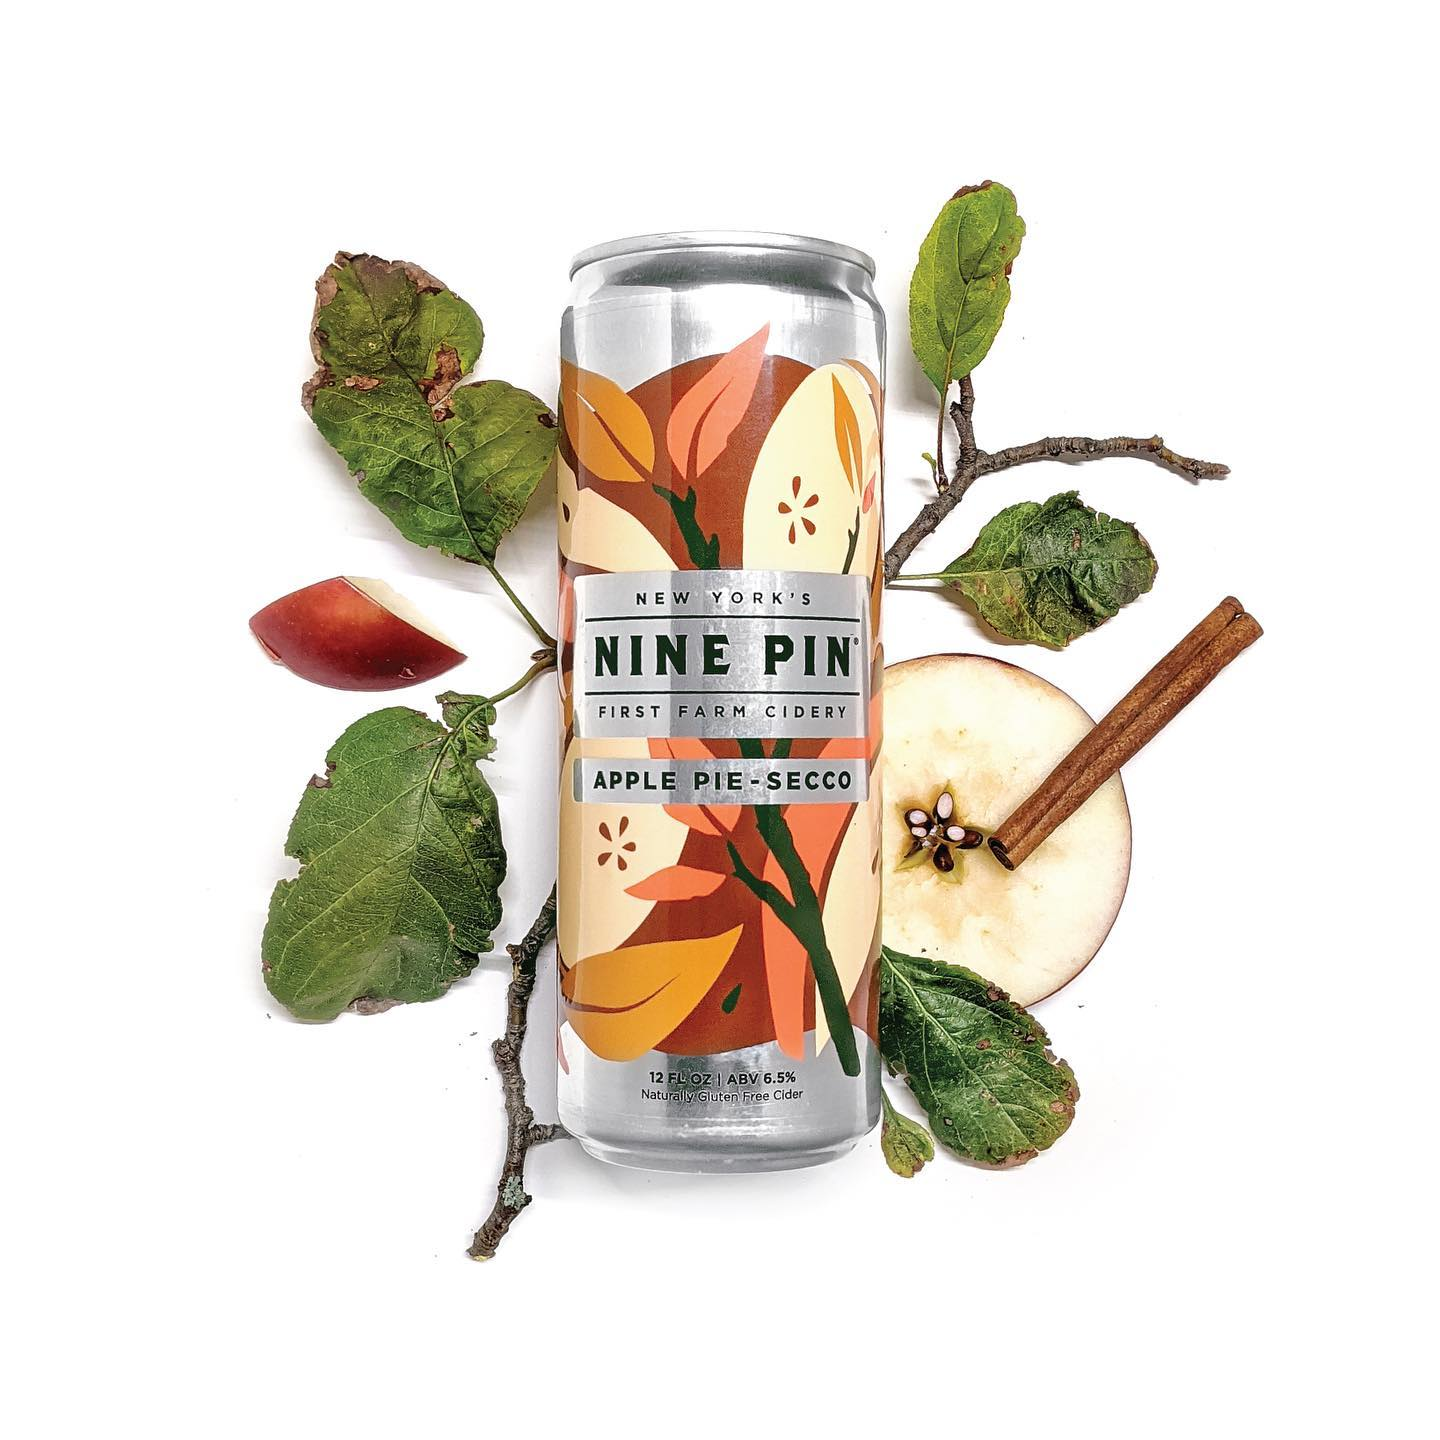 Brown and burgundy Nine Pin Apple Pie-Secco can on top of apple branches and apple slices.